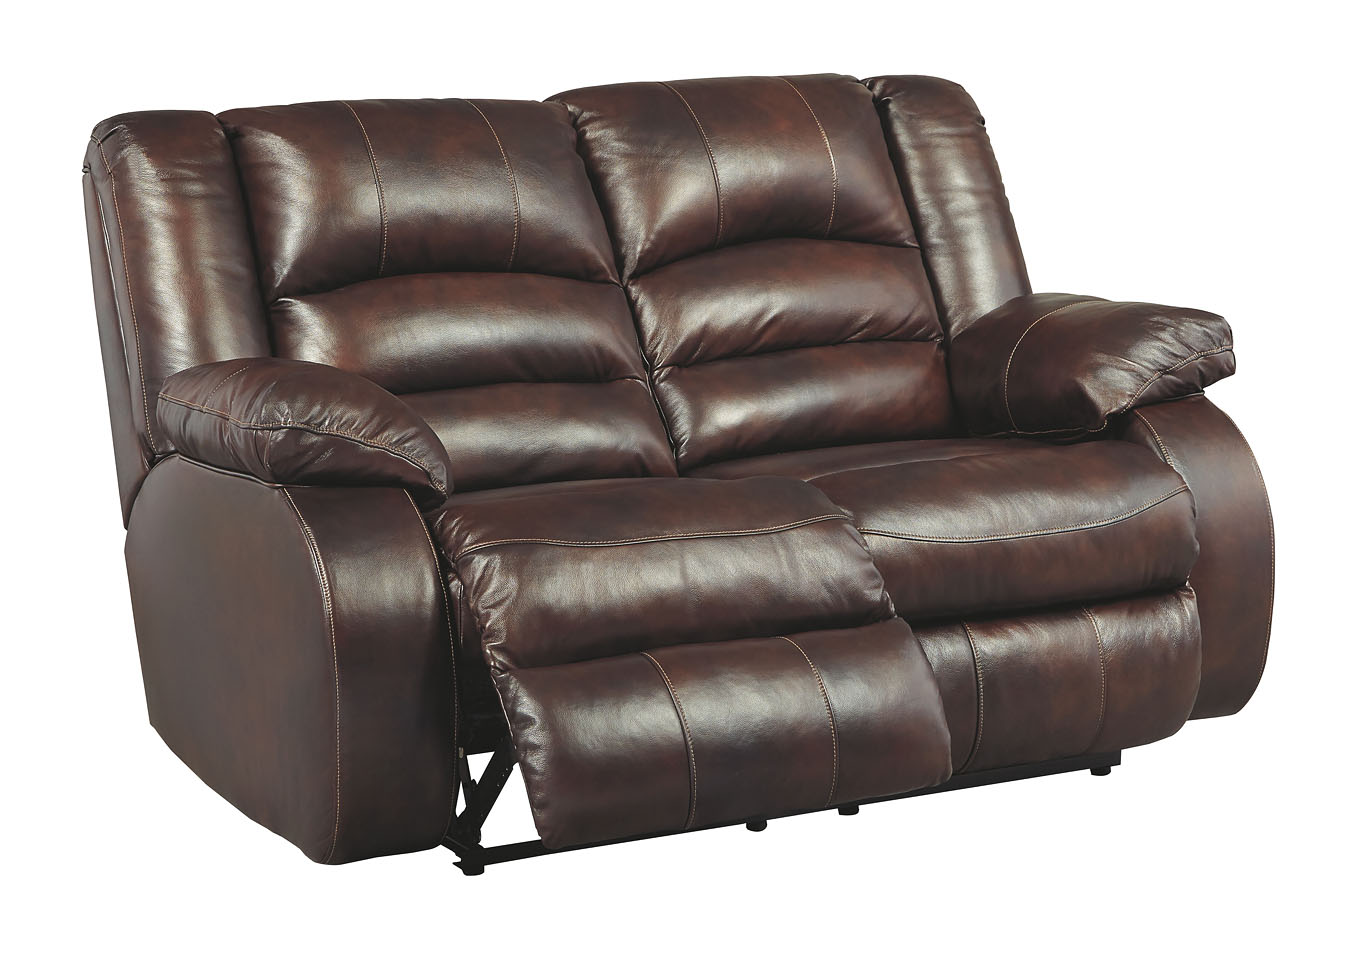 Levelland Cafe Power Reclining Loveseat,ABF Signature Design by Ashley